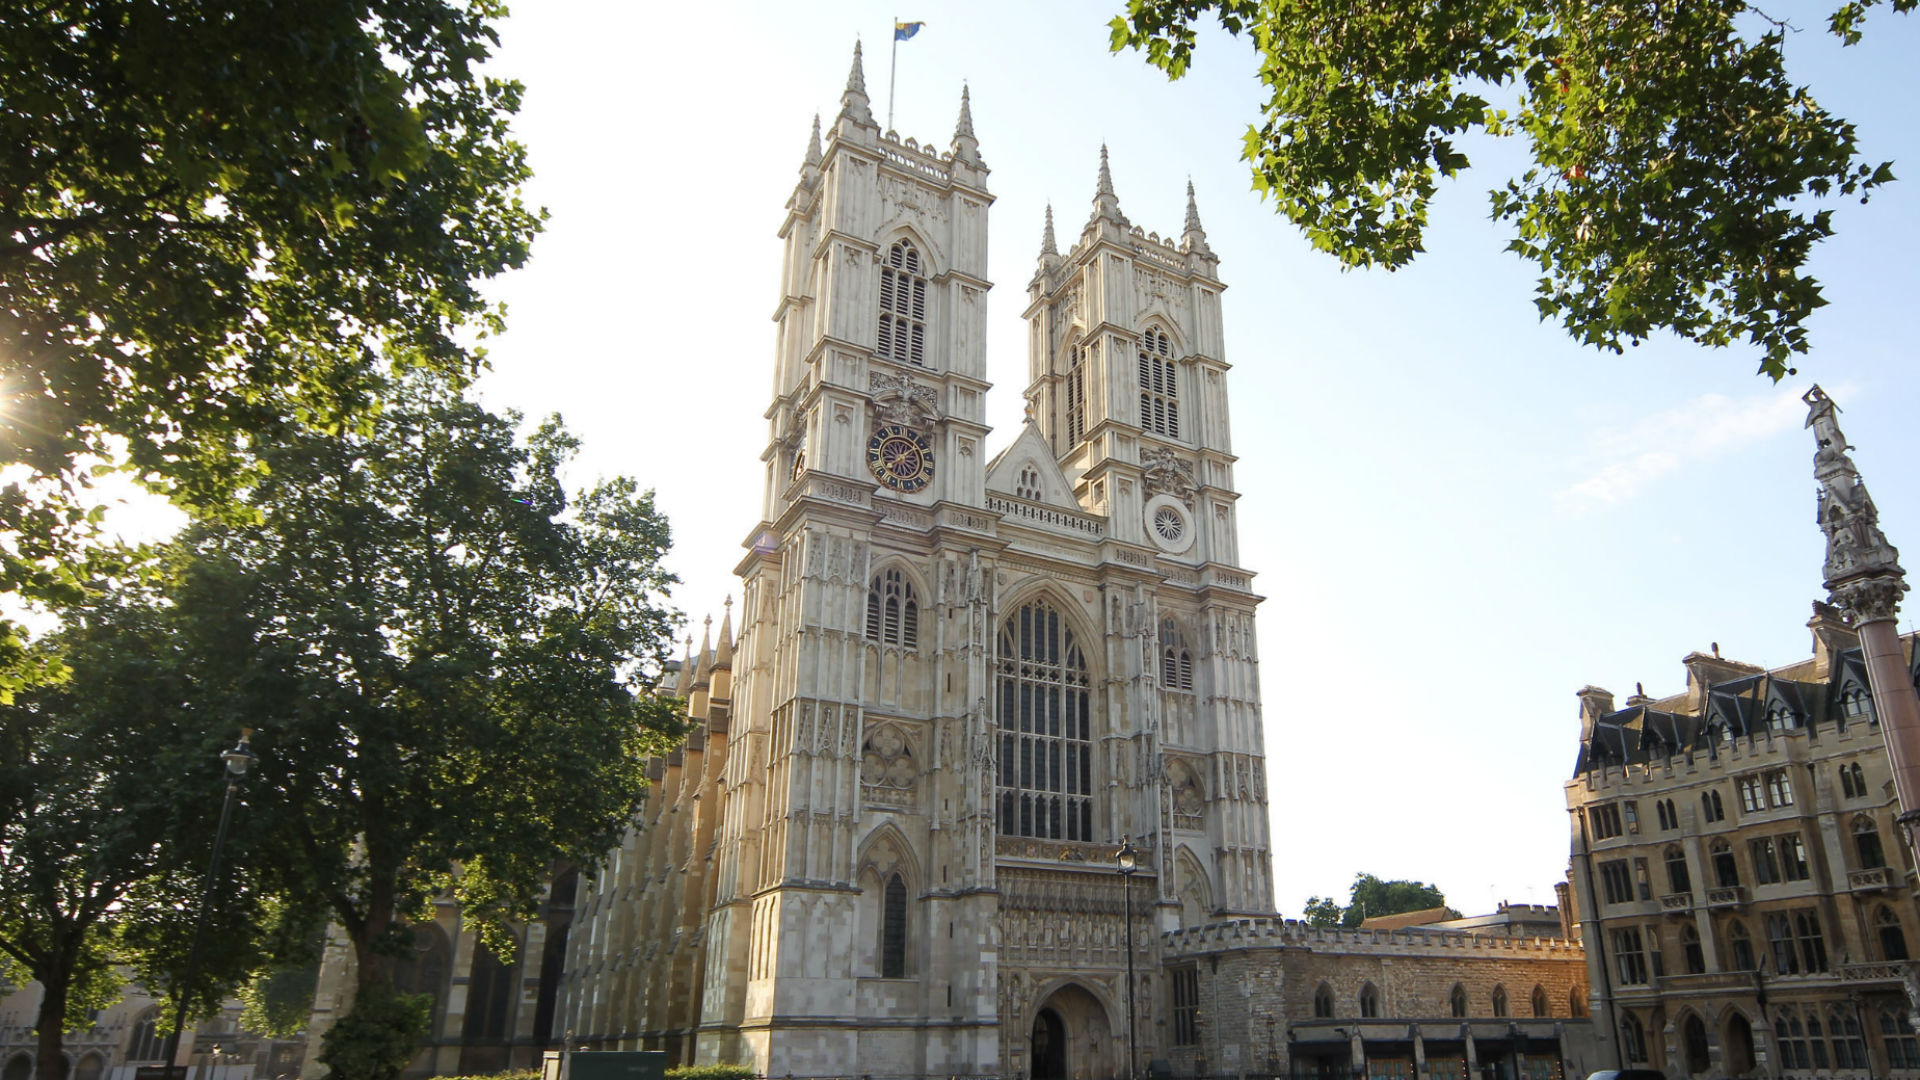 Exterior view of Westminster Abbey with leafy trees and sunshine